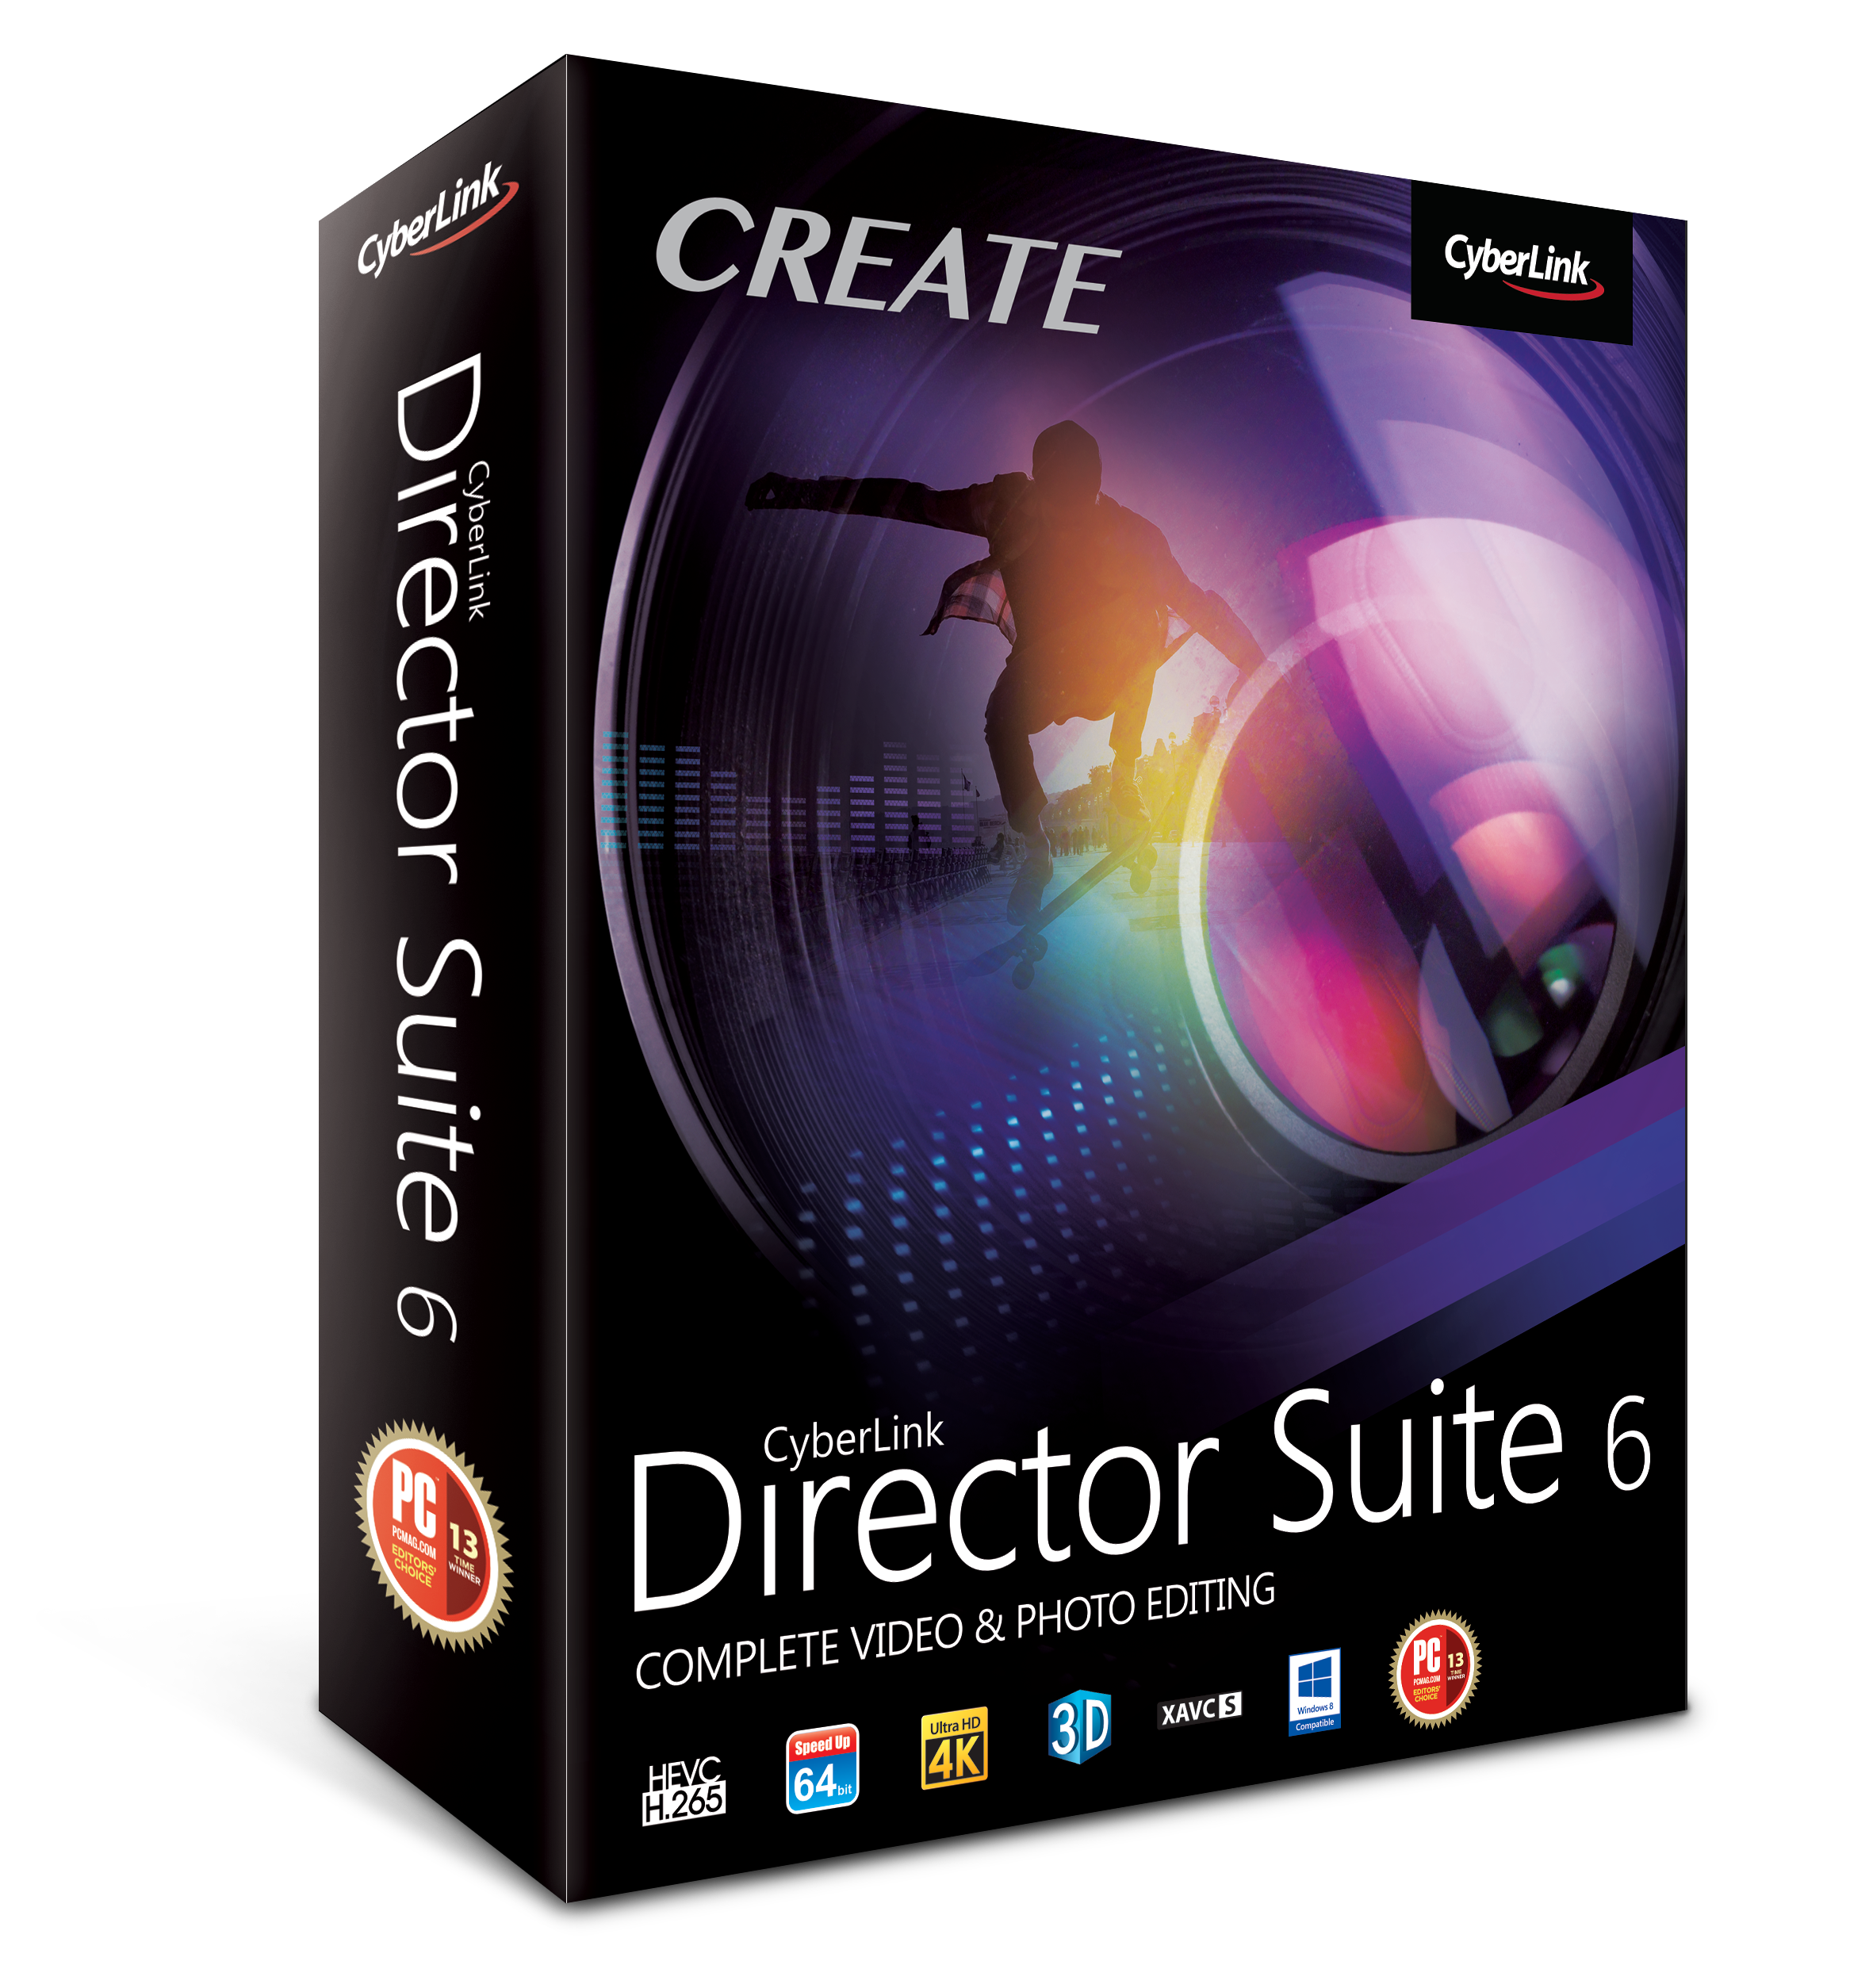 Image of Director Suite 6